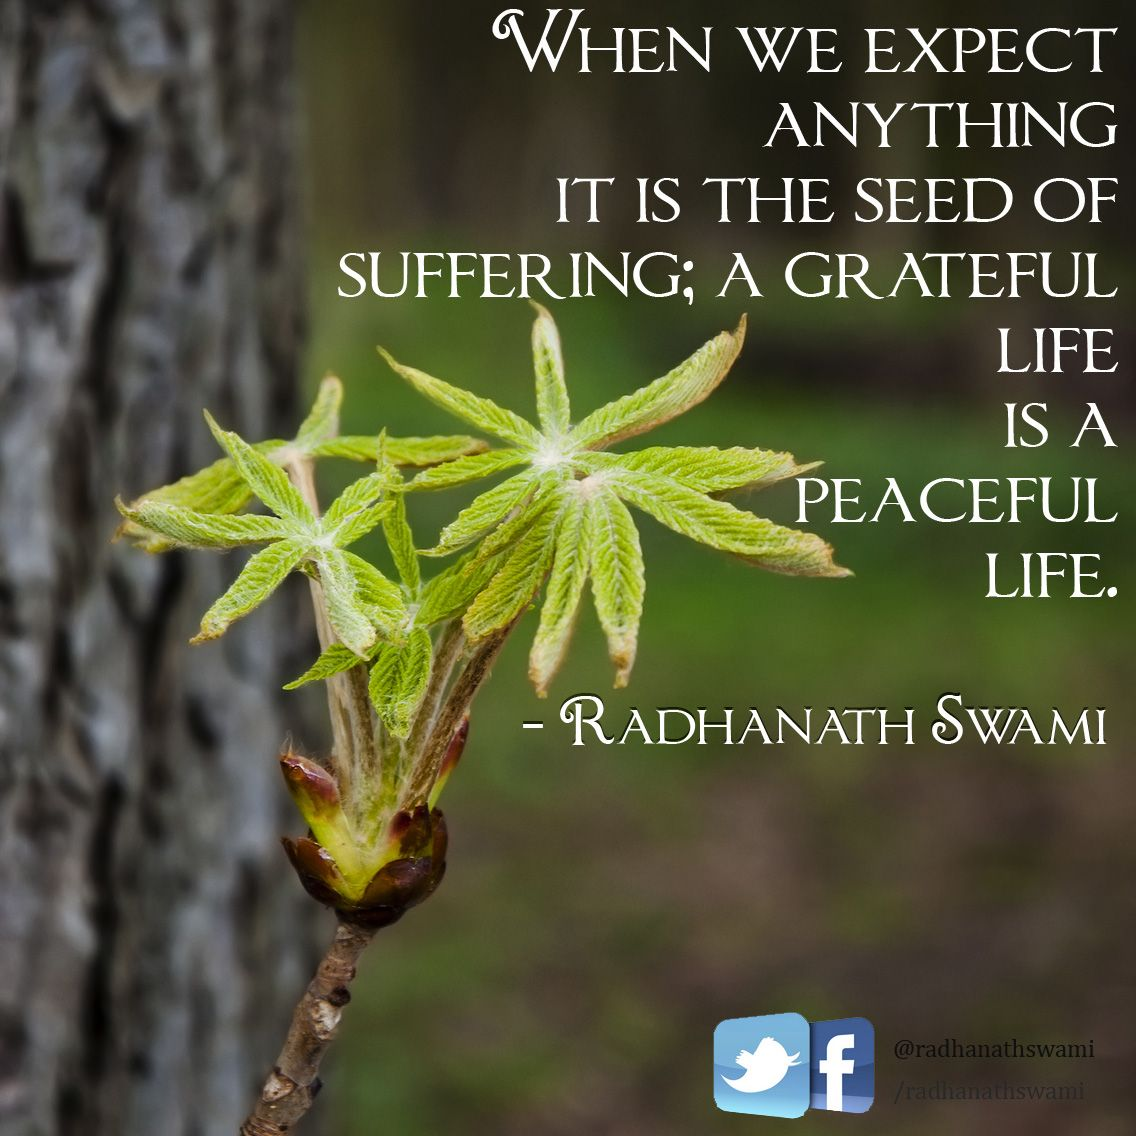 When We Expect Anything It Is The Seed Of Suffering; A Grateful Life Is A